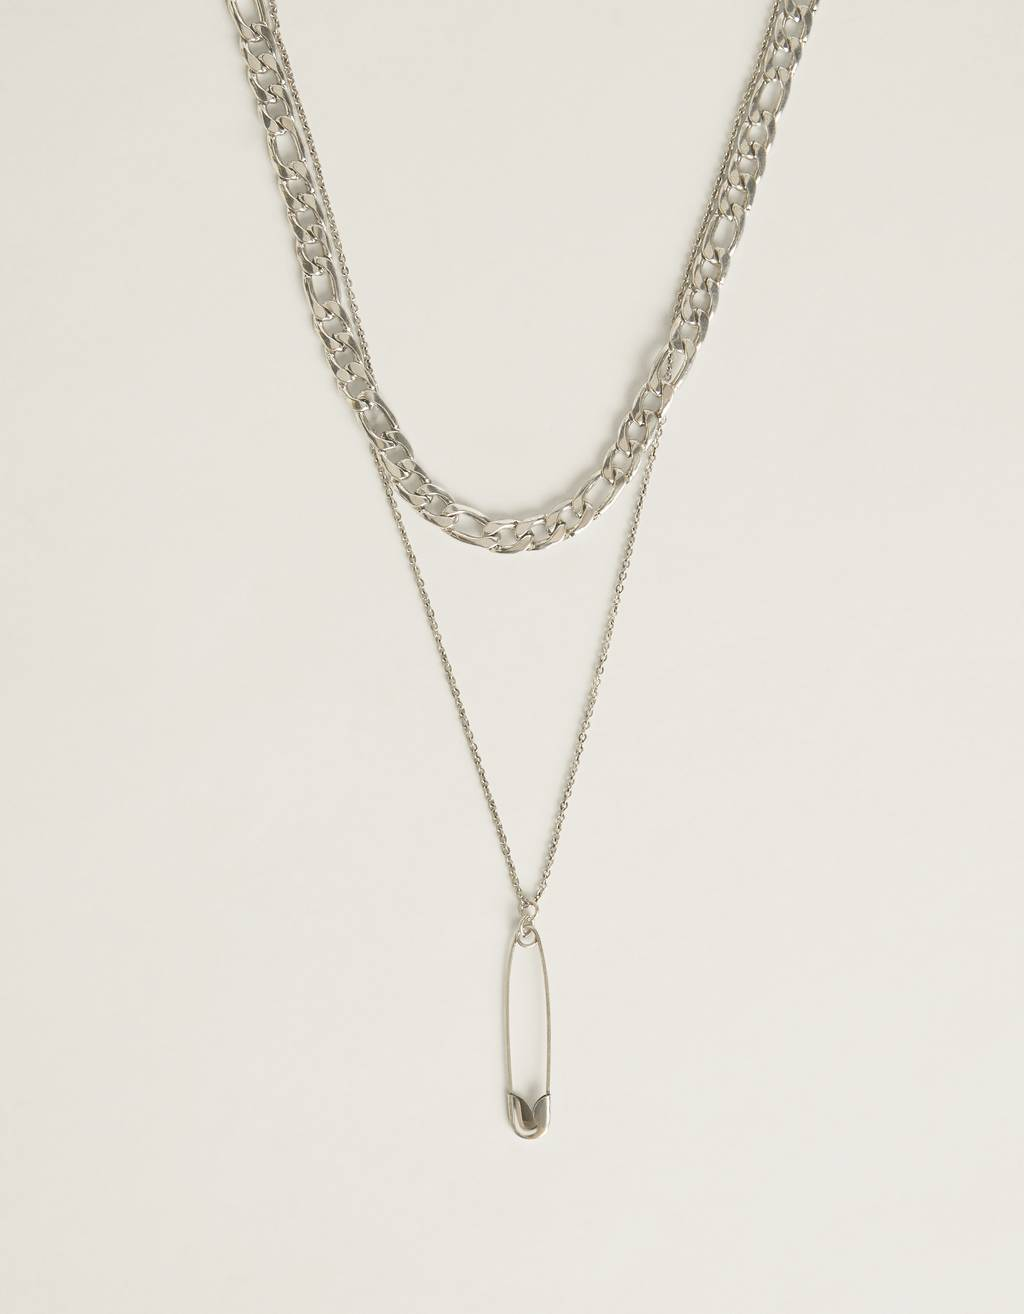 Necklace with a silver-coloured safety pin pendant